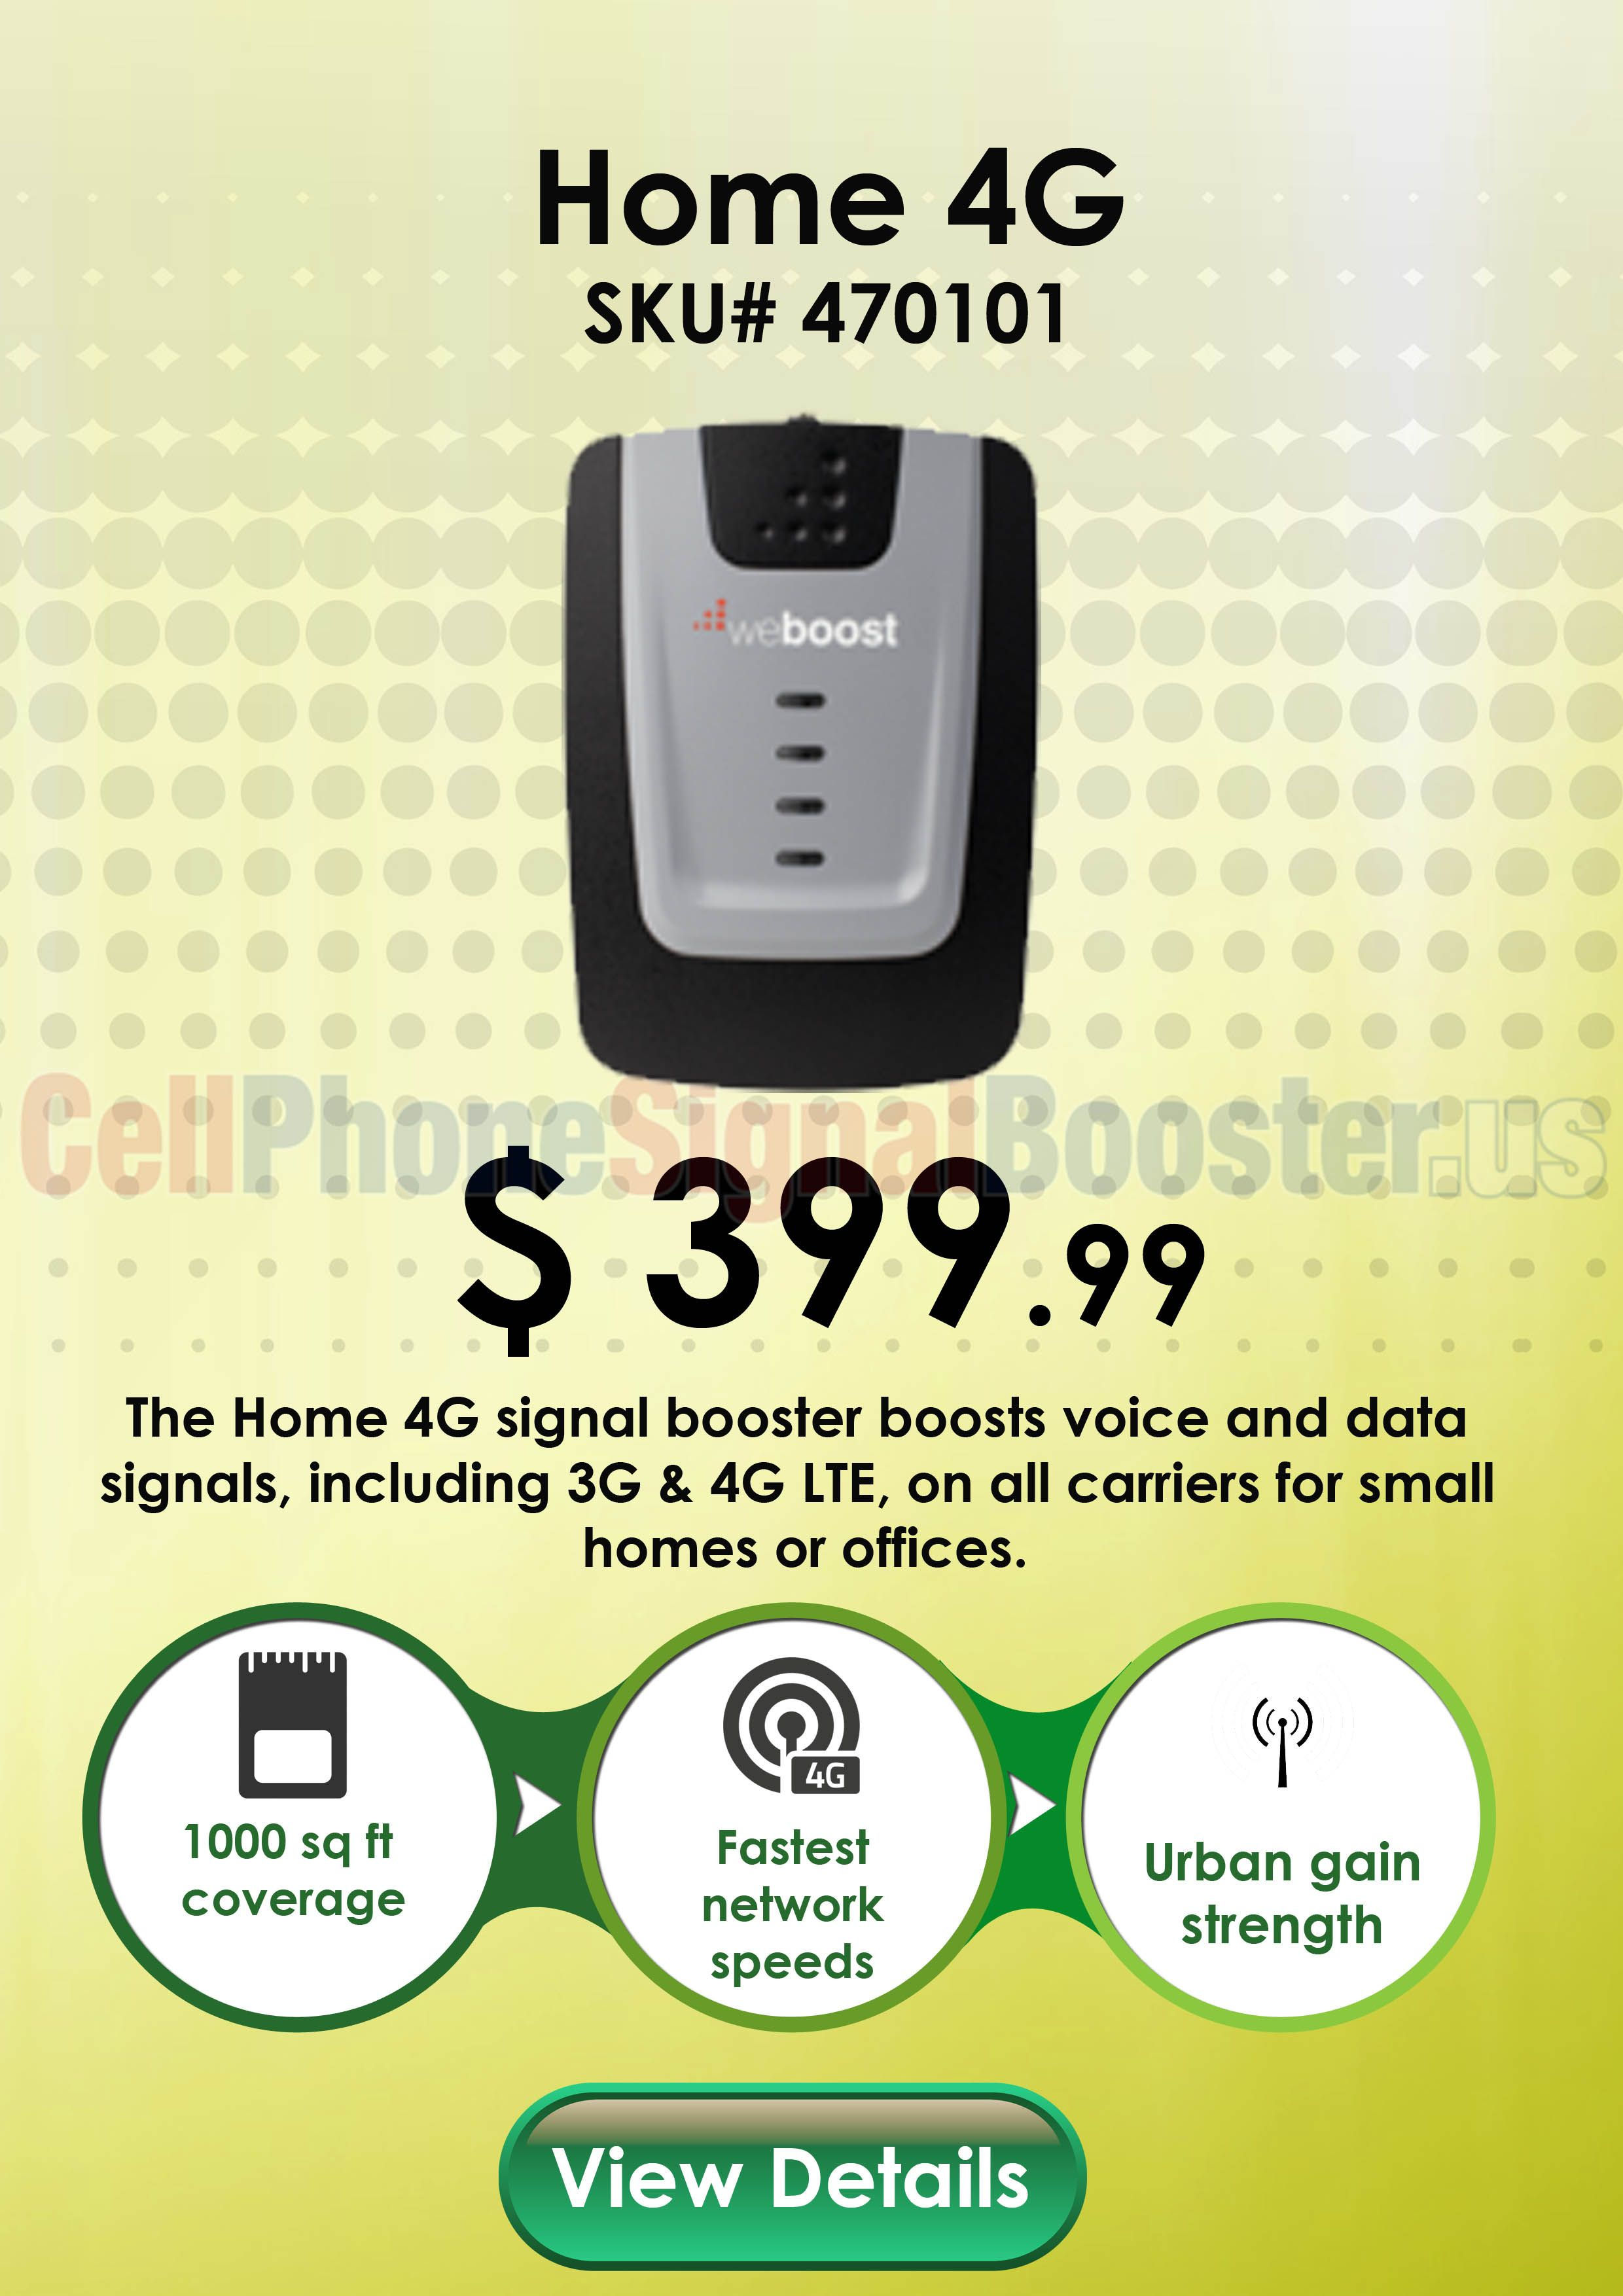 Weboost Home 4g 470101 Desktop Booster Kit With Surge Protector Cell Phone Booster Boost Mobile Cell Phone Carrier